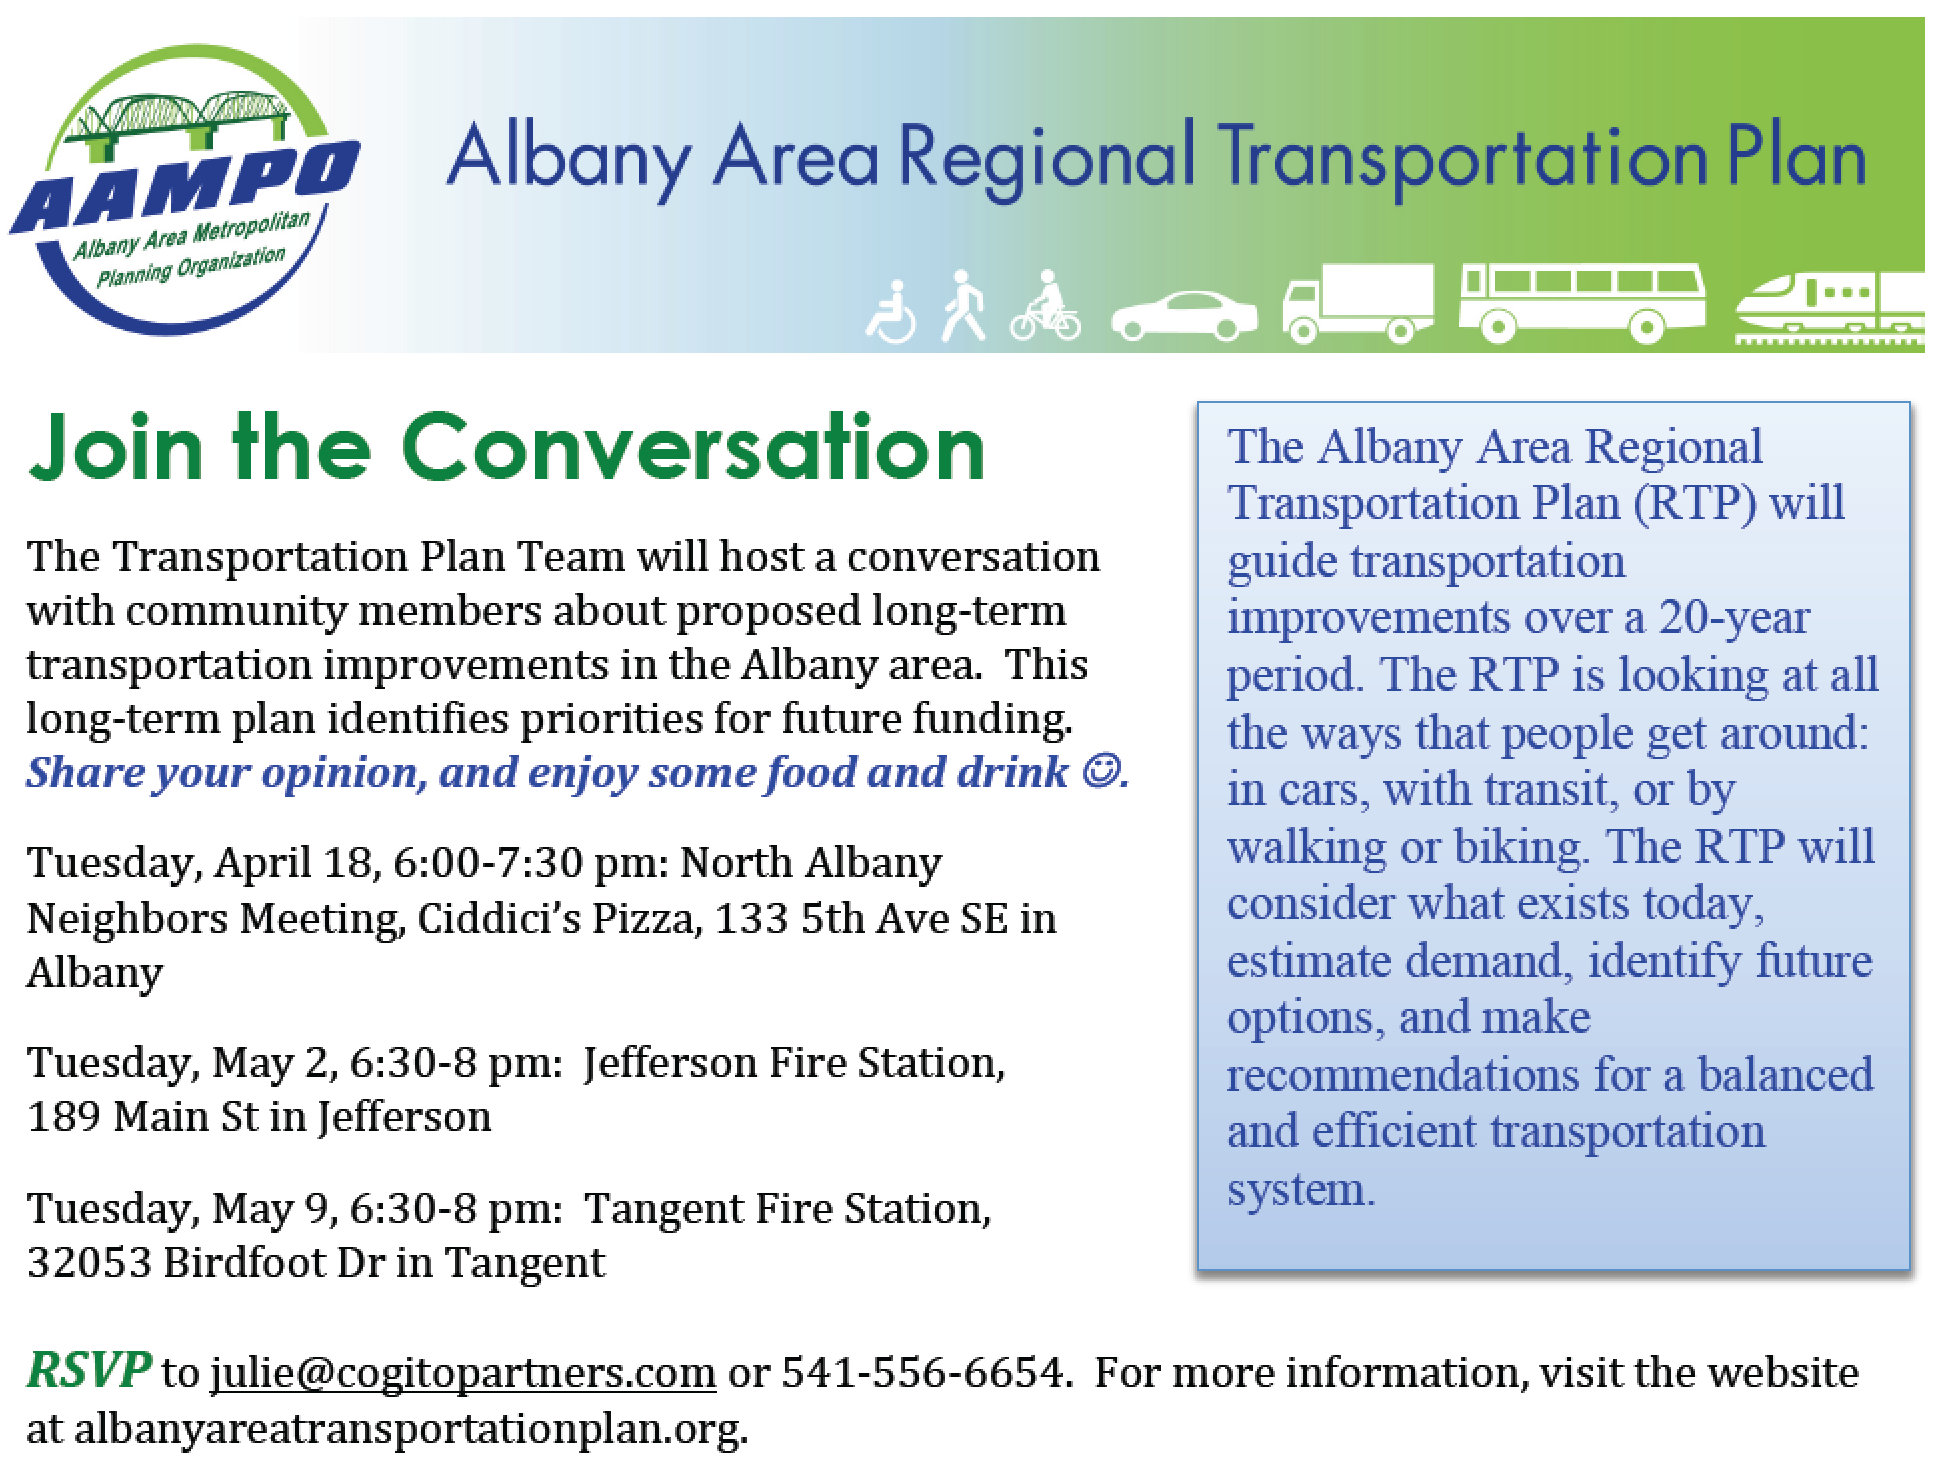 Upcoming Albany Area Regional Transportation Plan